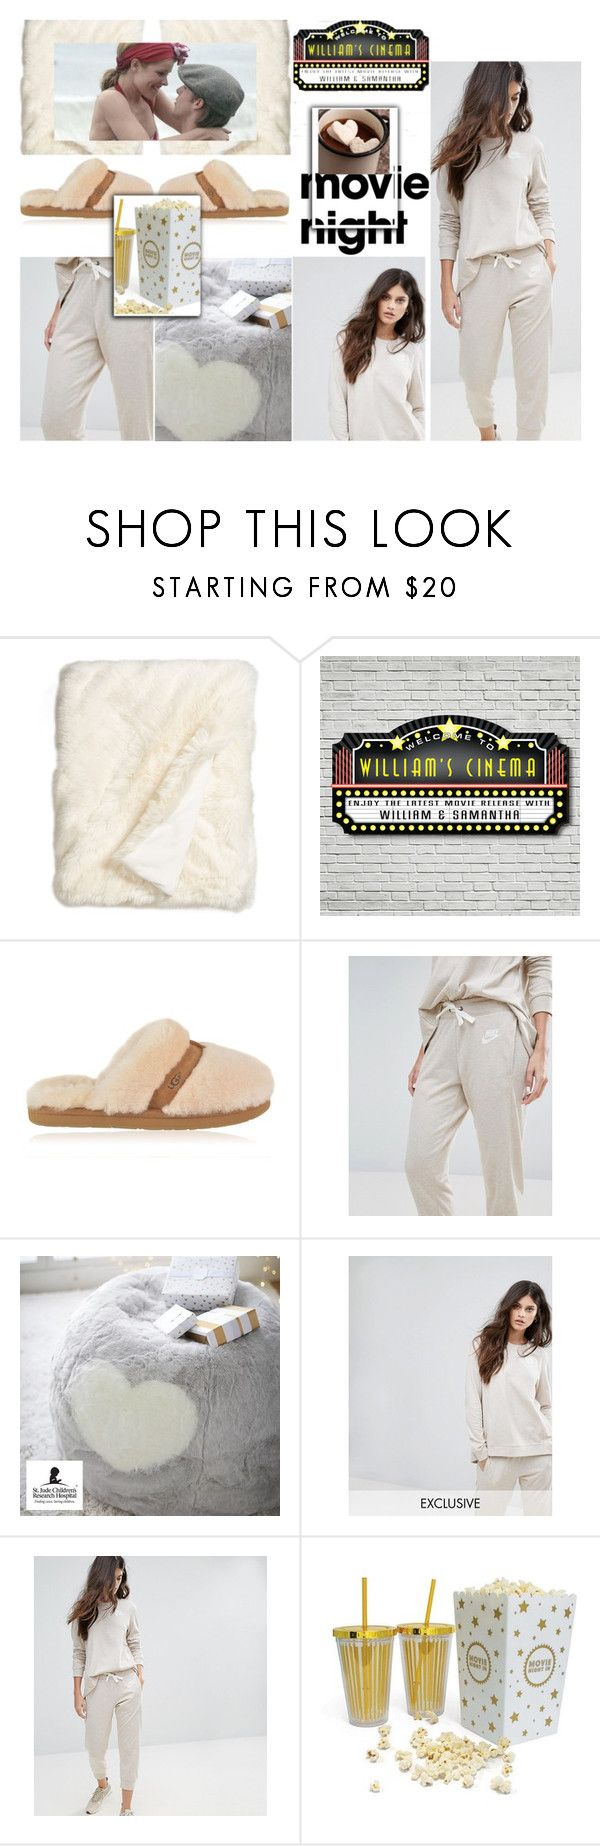 """Bring the Popcorn: Movie Night"" by beleev ❤ liked on Polyvore featuring Nordstrom, UGG, NIKE, PBteen and movieNight"